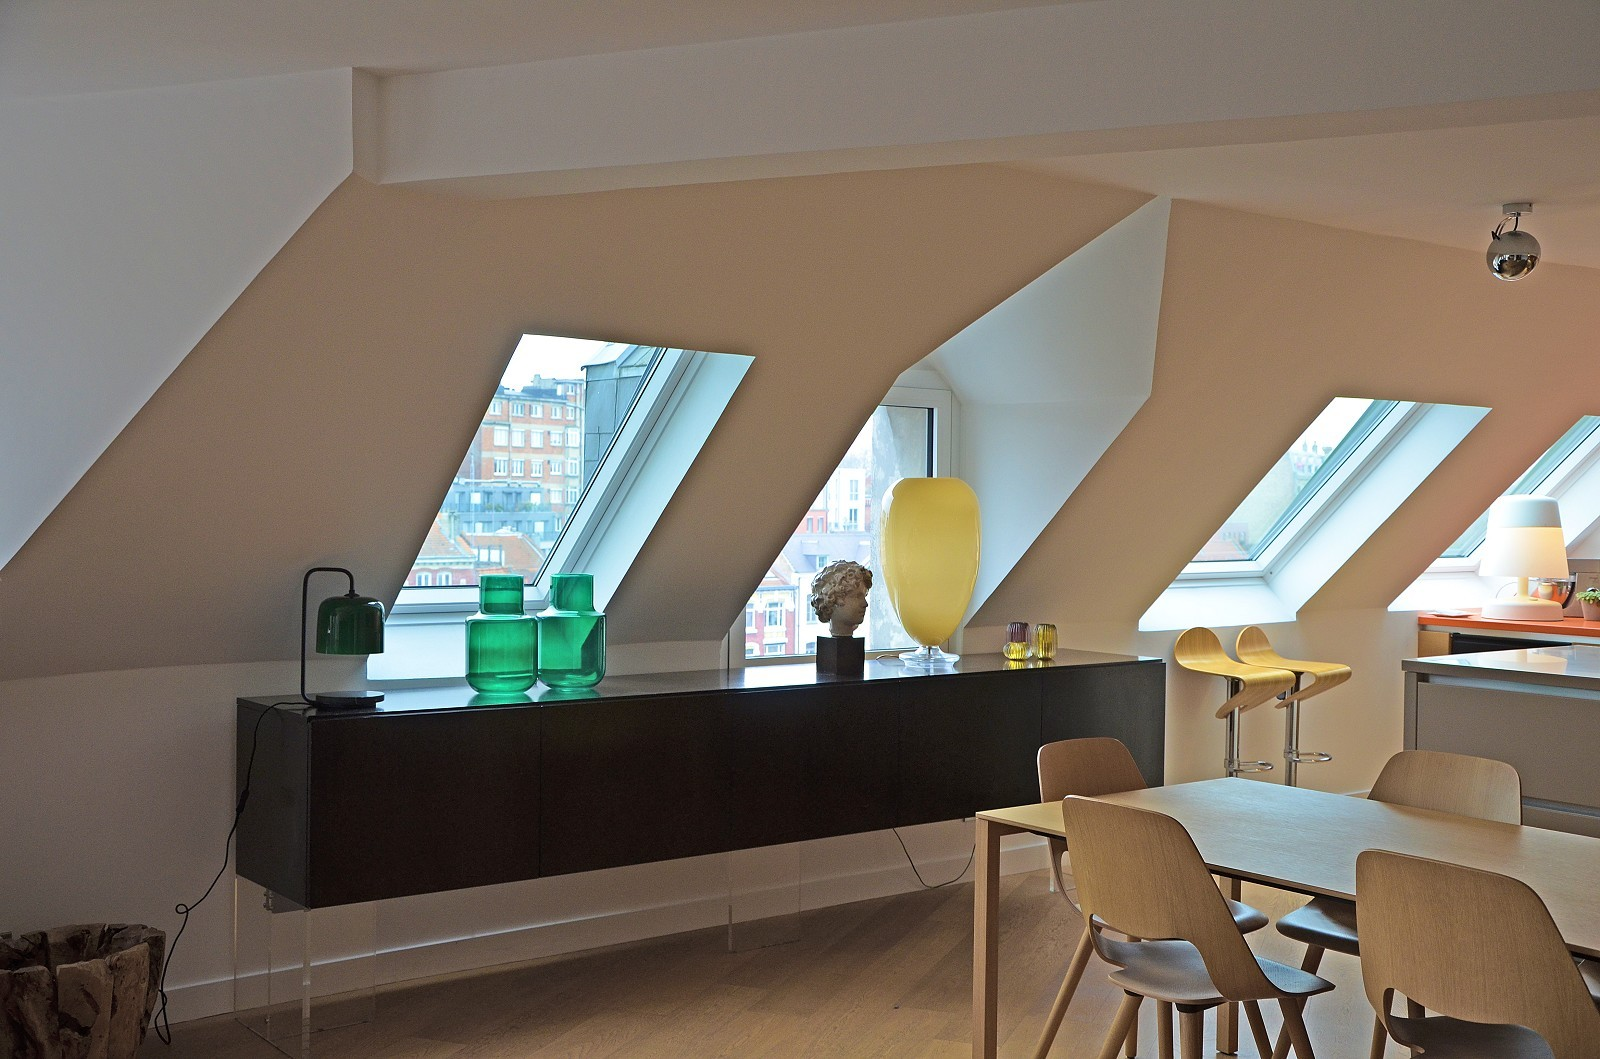 Vieux-Lille, apartment of 2800 sqft renovated by architect